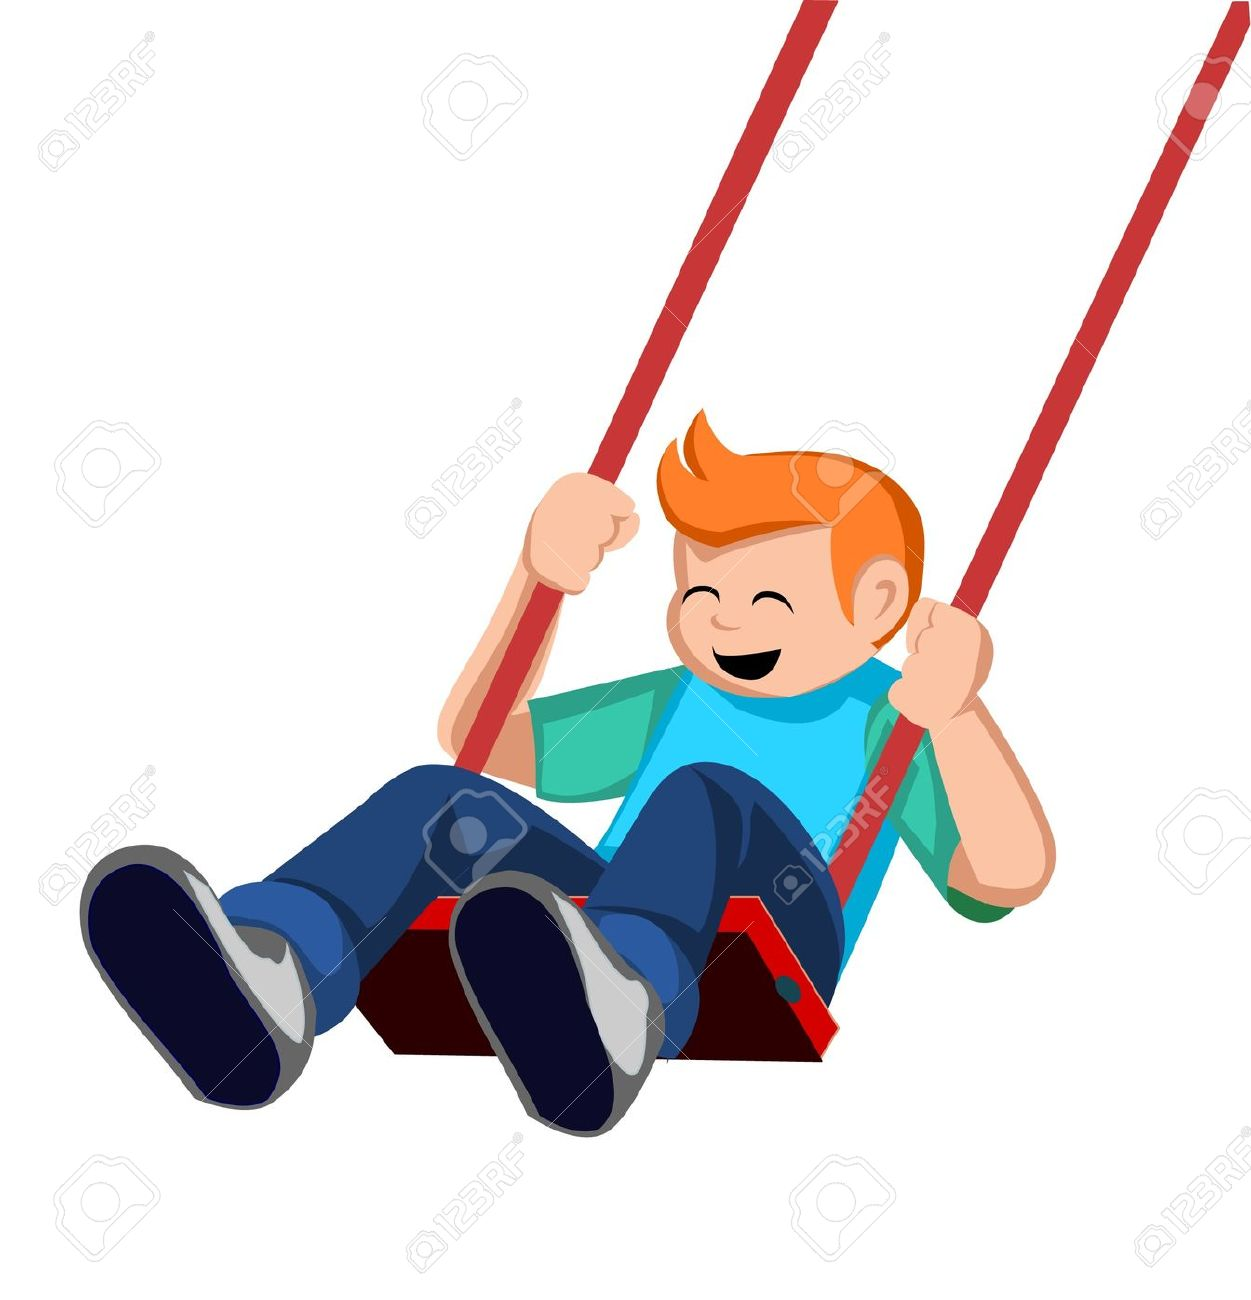 Kid Swing Royalty Free Cliparts, Vectors, And Stock Illustration.